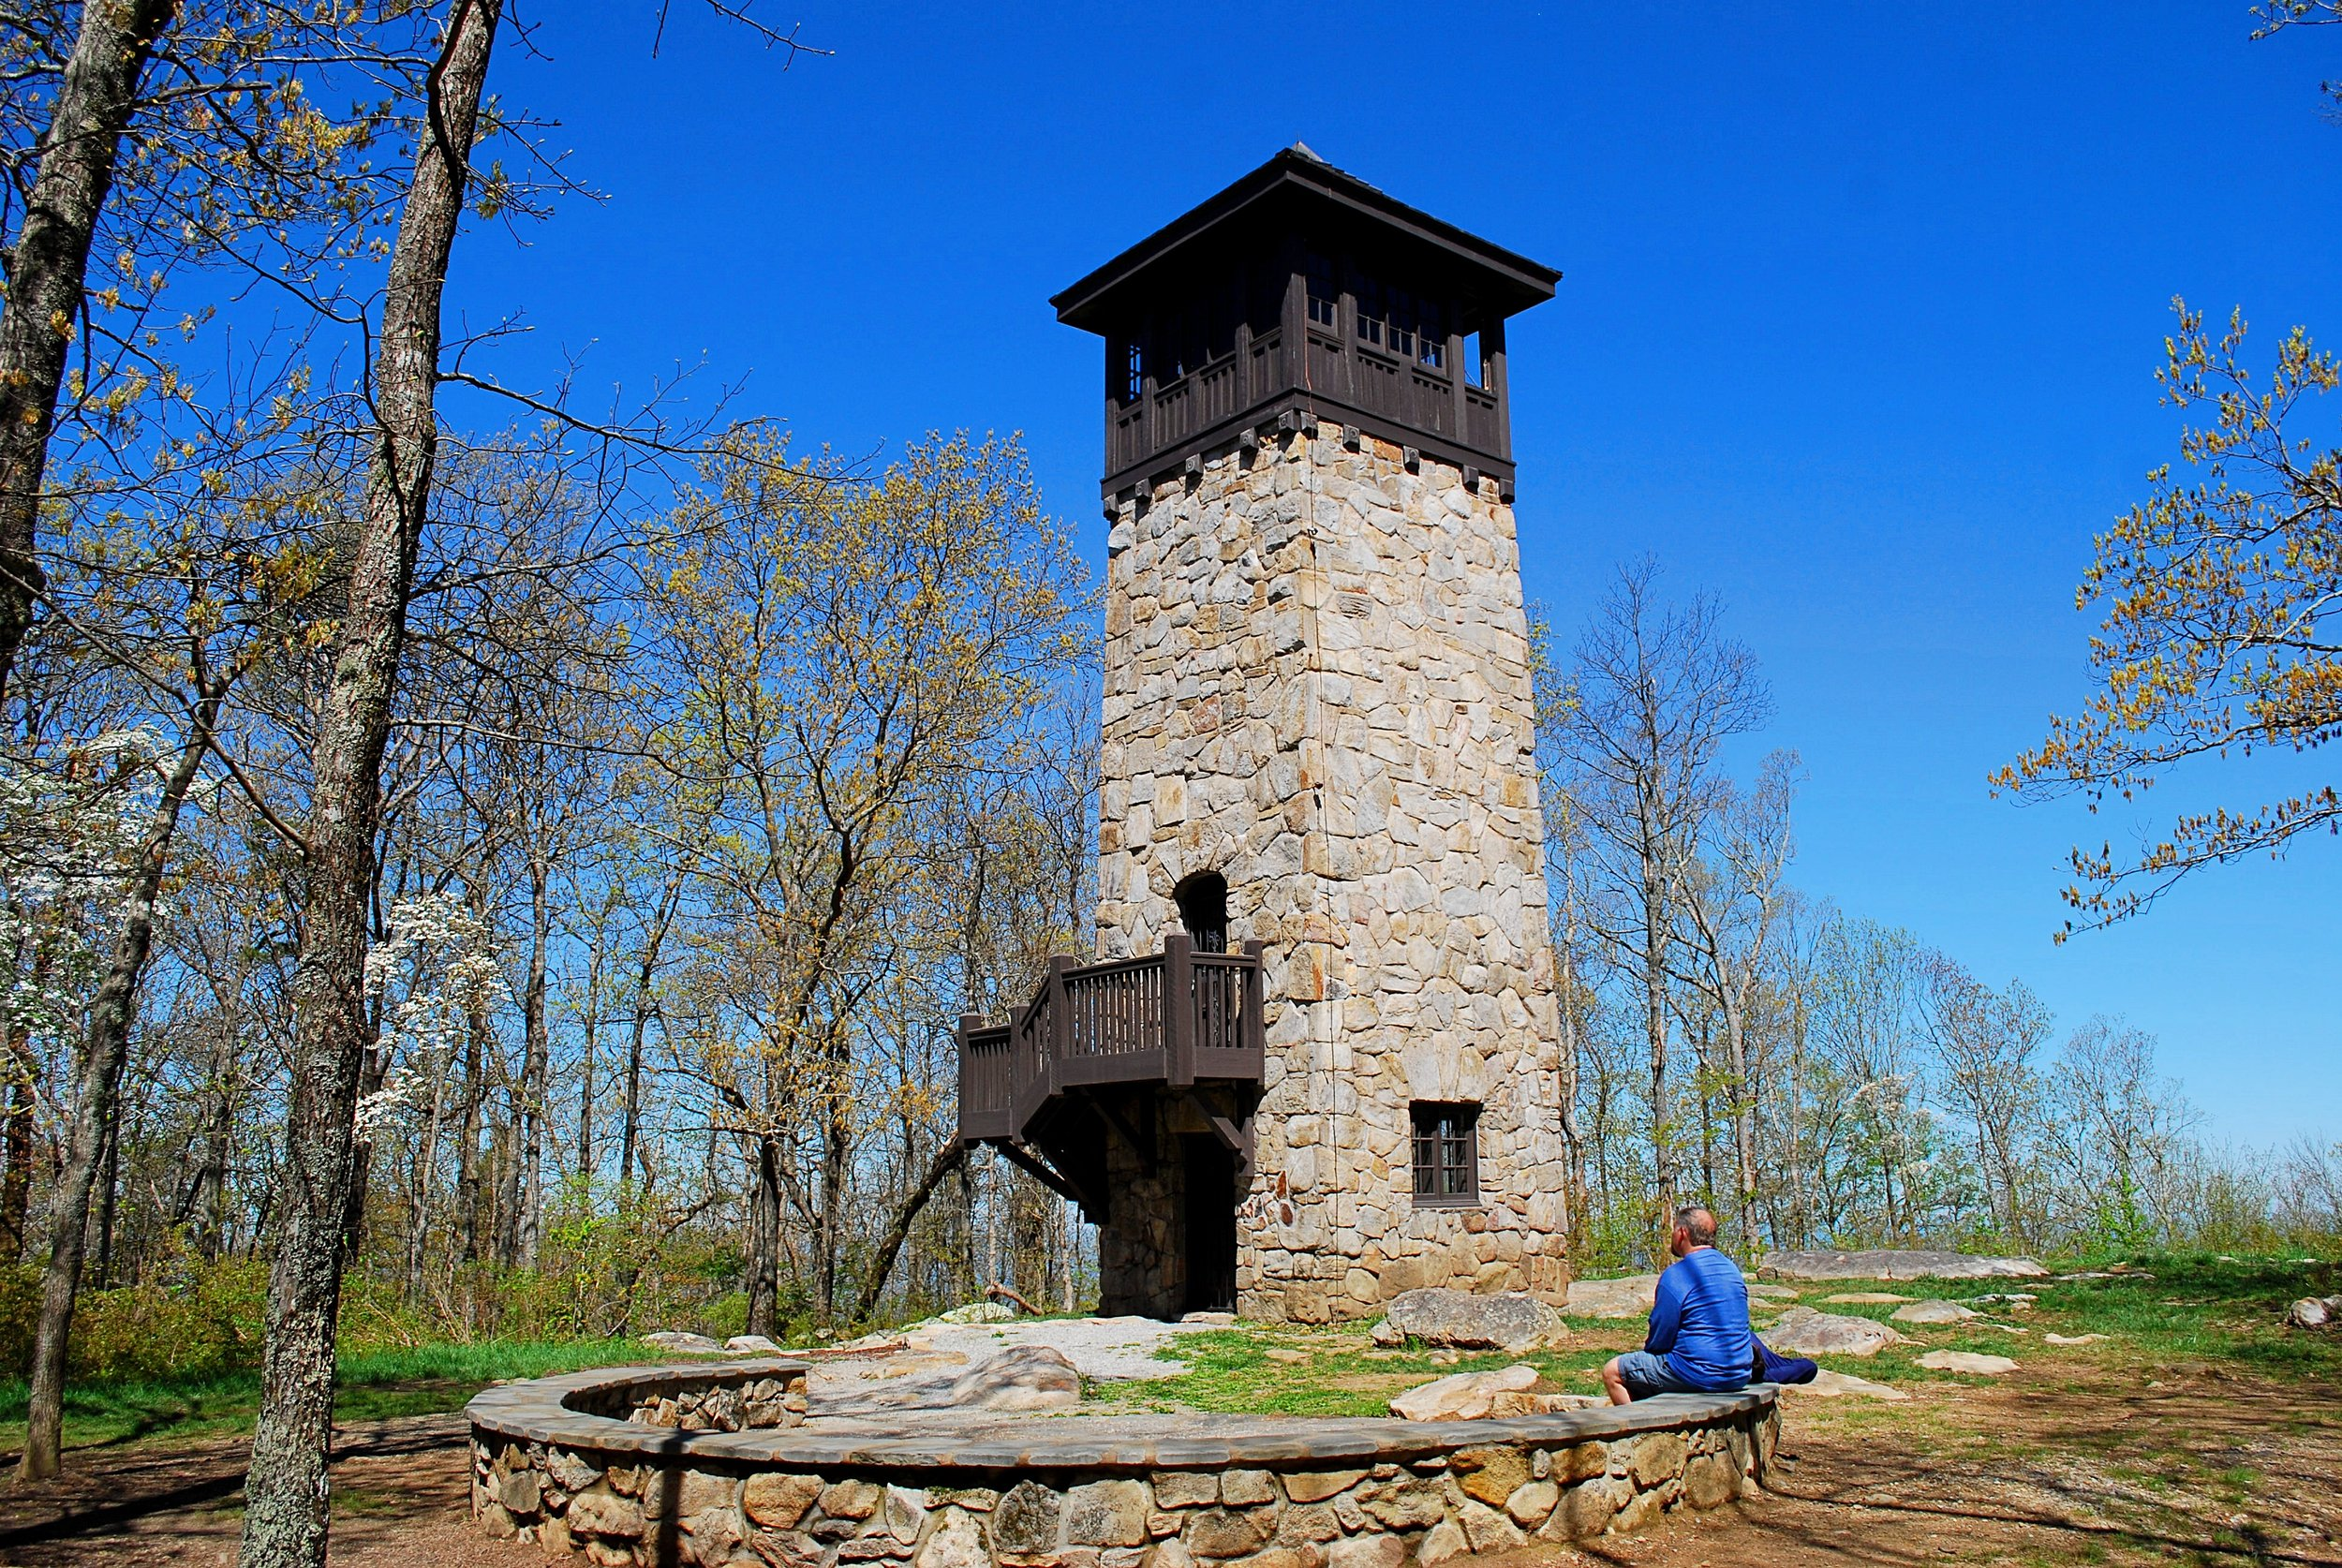 The Civilian Conservation Corps Stone Tower. Photo: Bob Butters